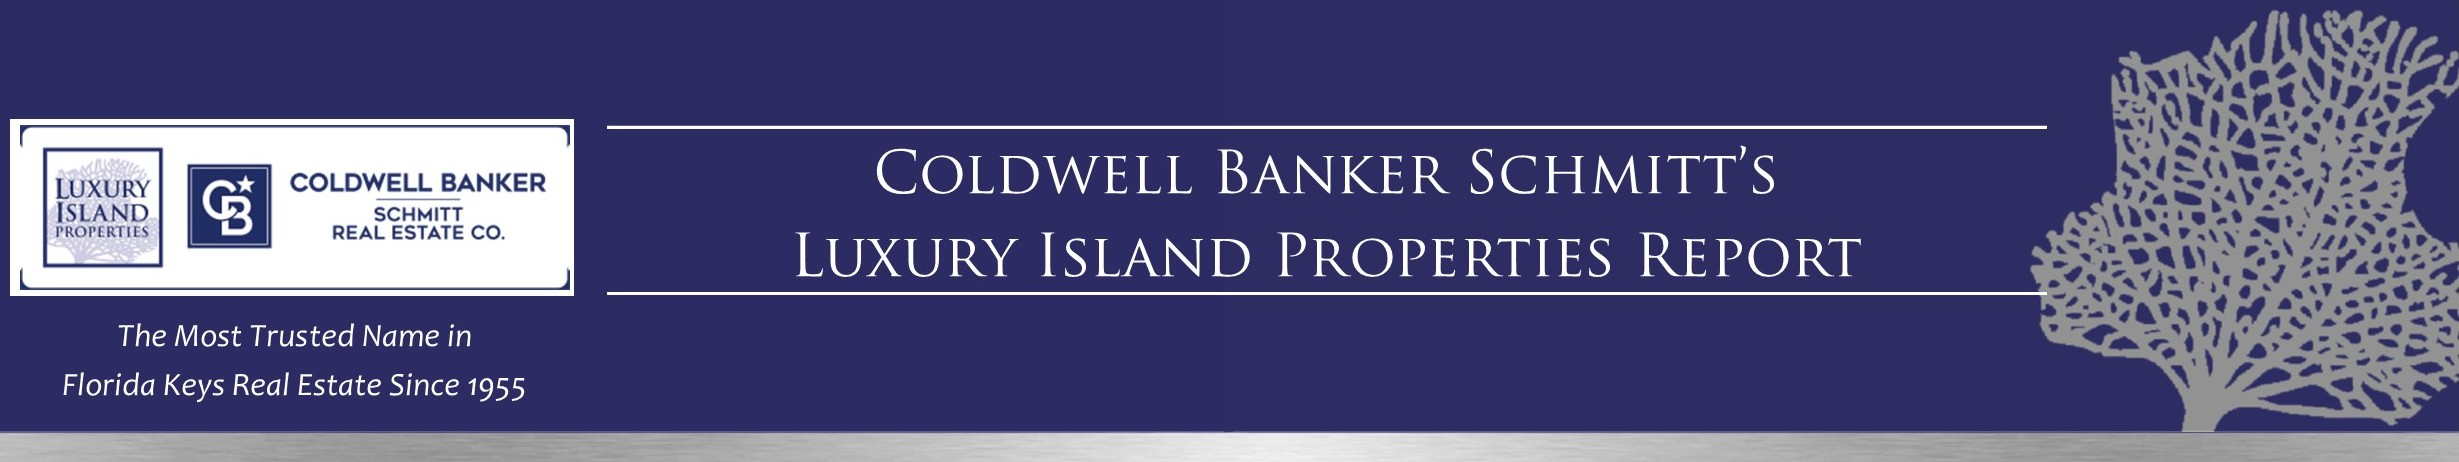 Luxury Island Properties Real Estate Report | Coldwell Banker -